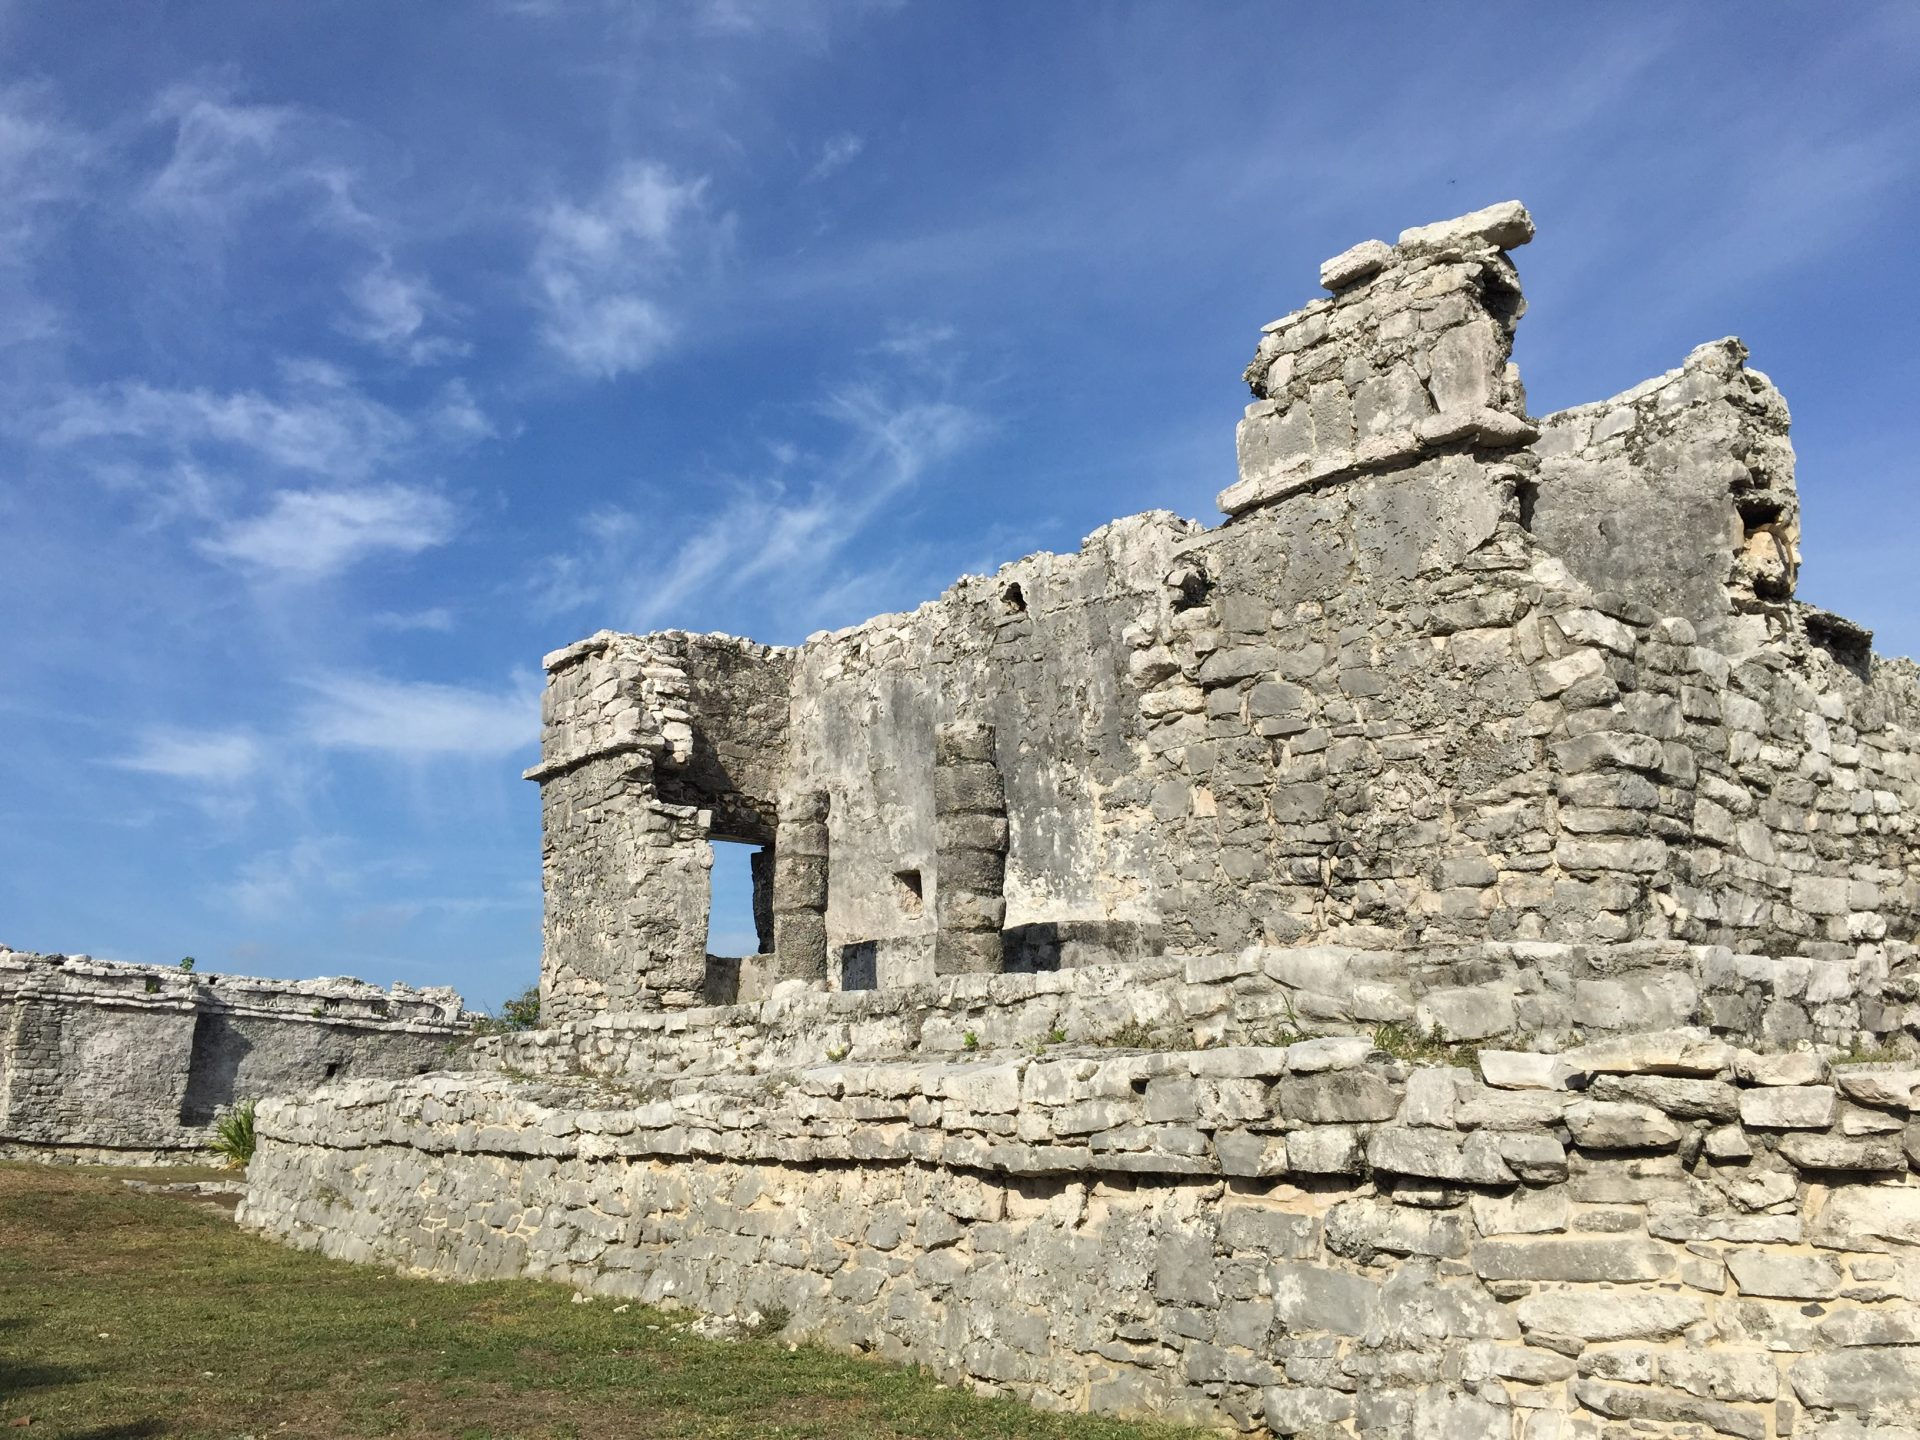 ruins tulum mexico - Travel Contests: October 30, 2019 - Mexico, Australia, Argentina, & more